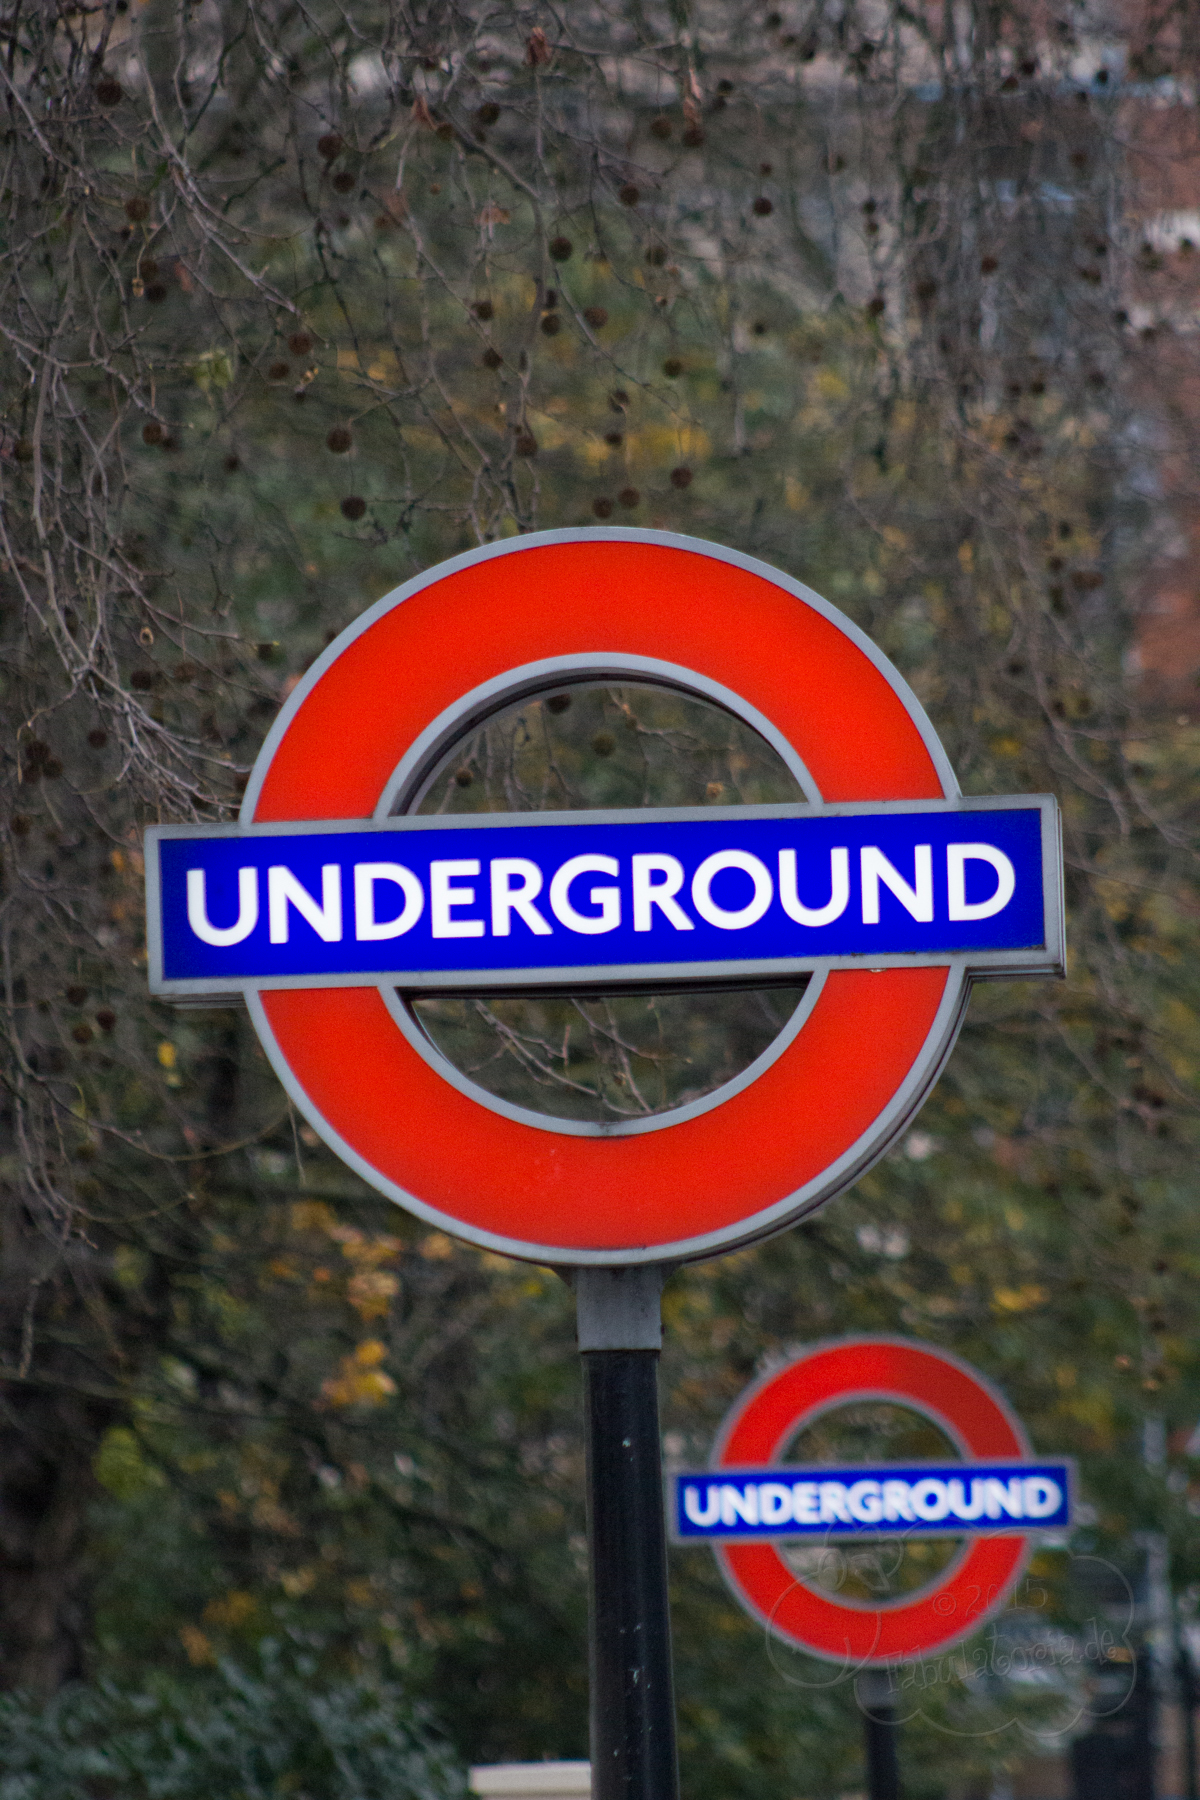 #BlogowskiLondonJourney - London Underground